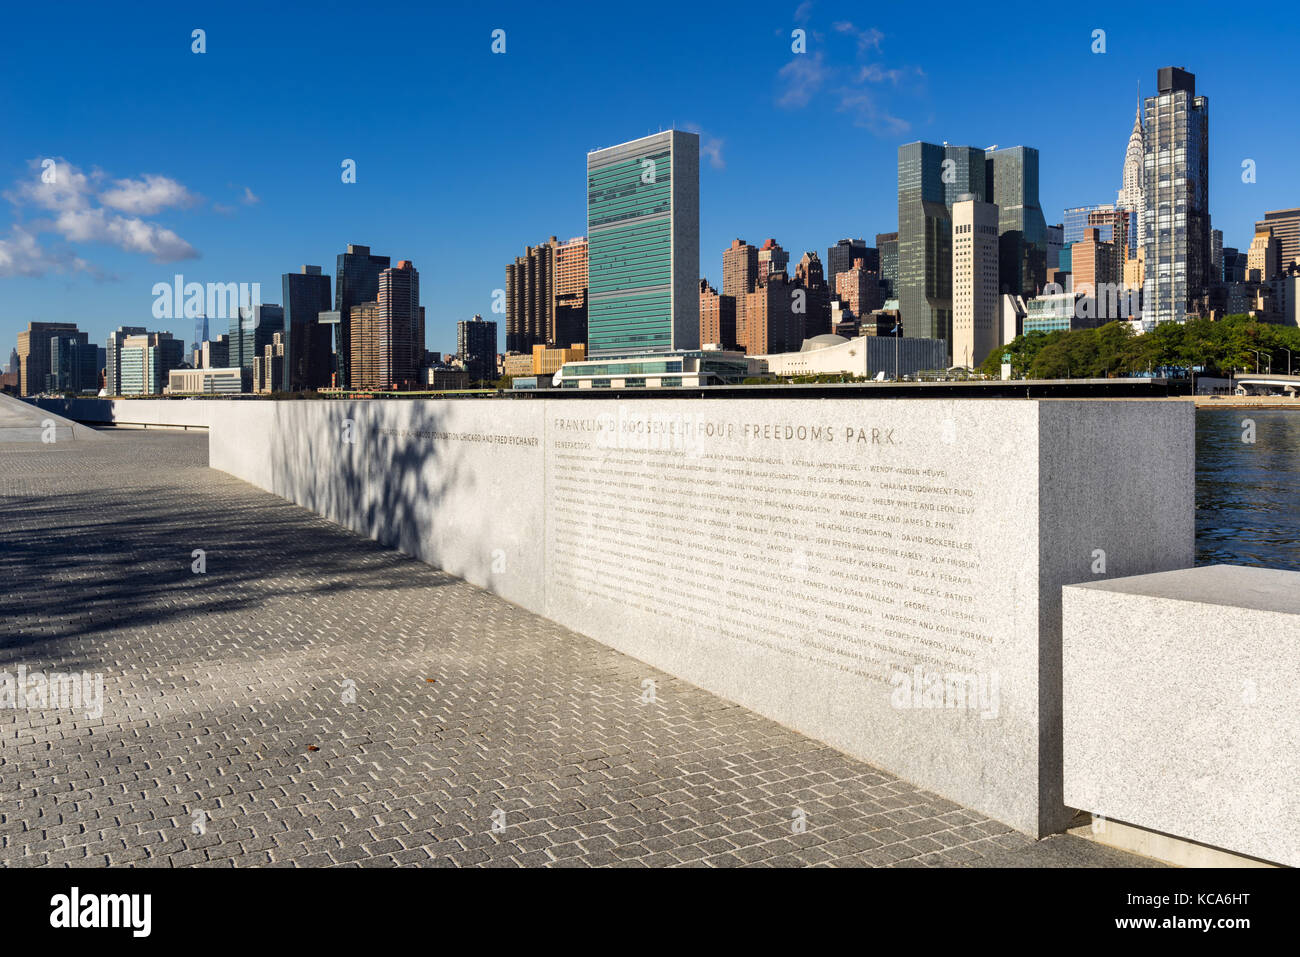 Manhattan Midtown East from Roosevelt Island (Franklin D. Rosevelt Four Freedoms Park). New York City - Stock Image